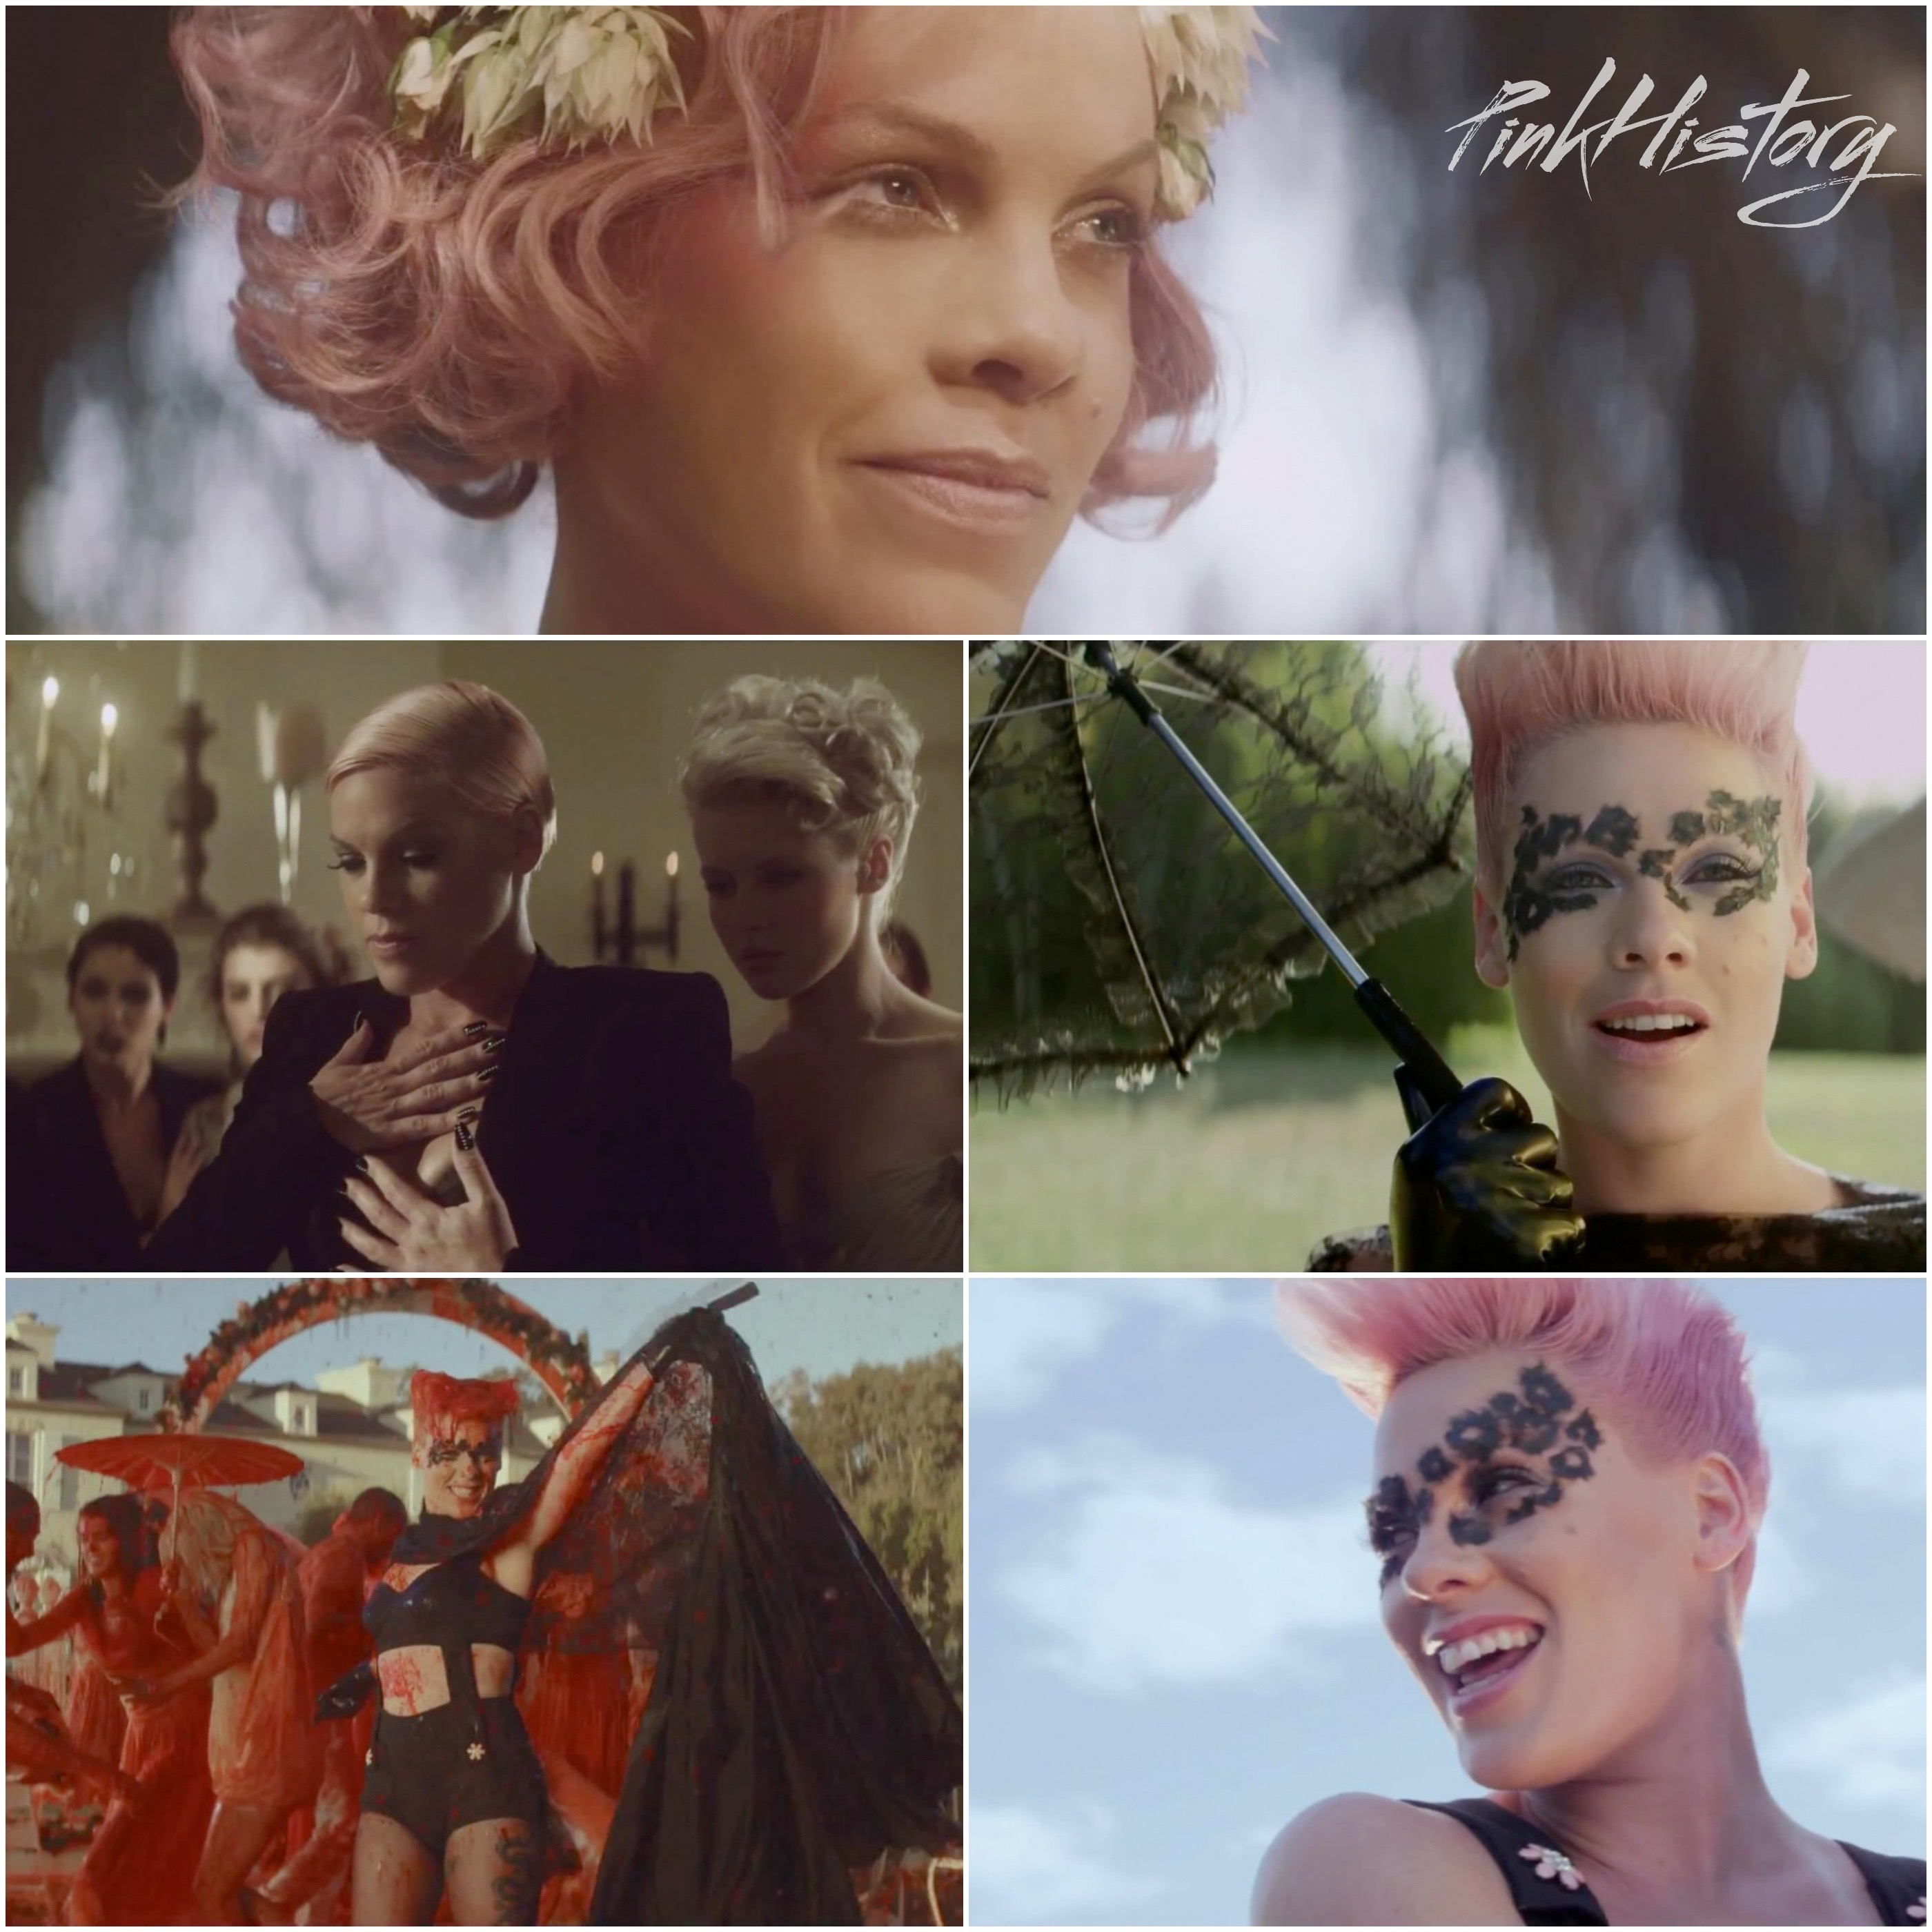 On This Day In Pink History 26th July 2012 Blow Me One Last Kiss Music Video Was Released On This Day In Pink History